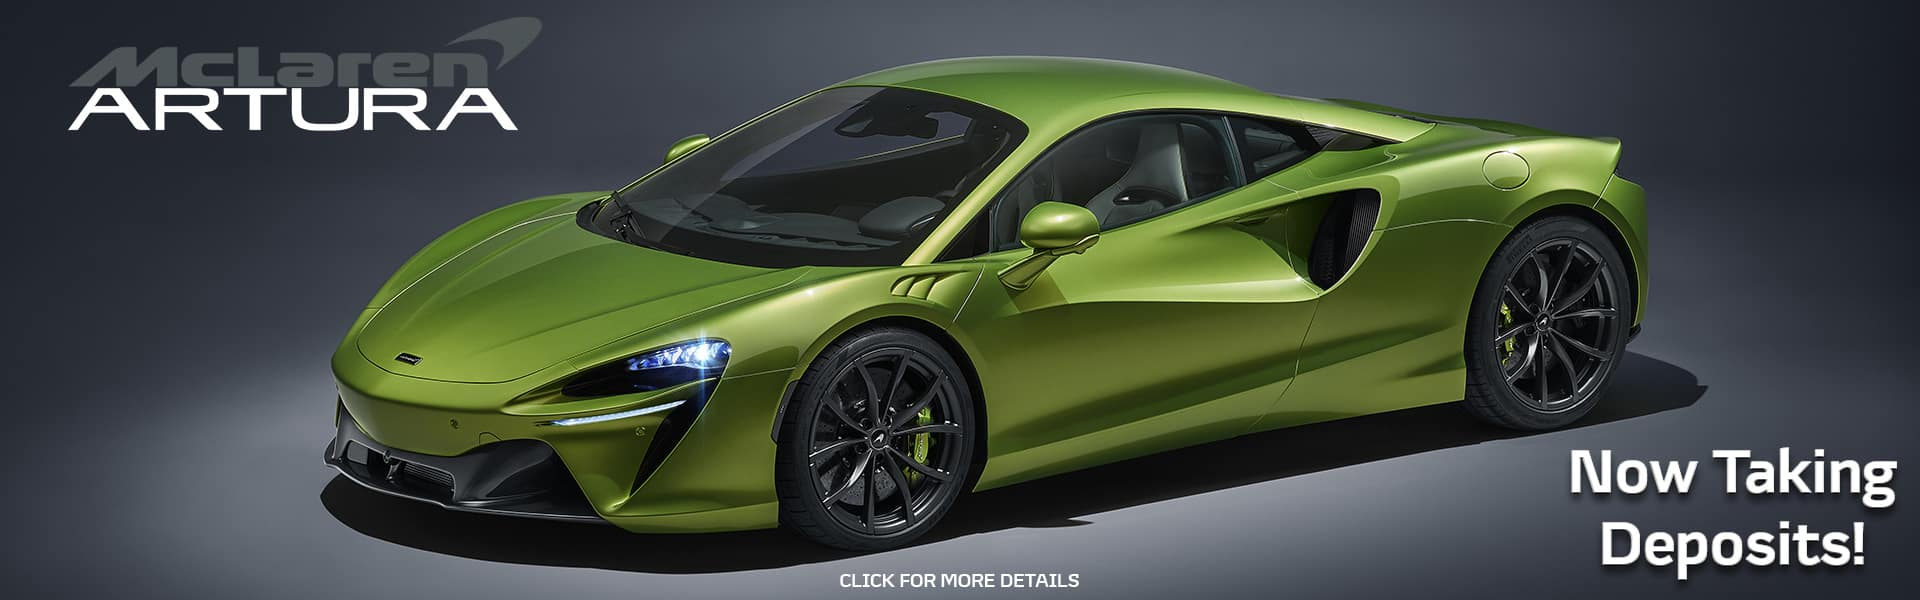 2022 McLaren Artura - Now Taking Deposits!